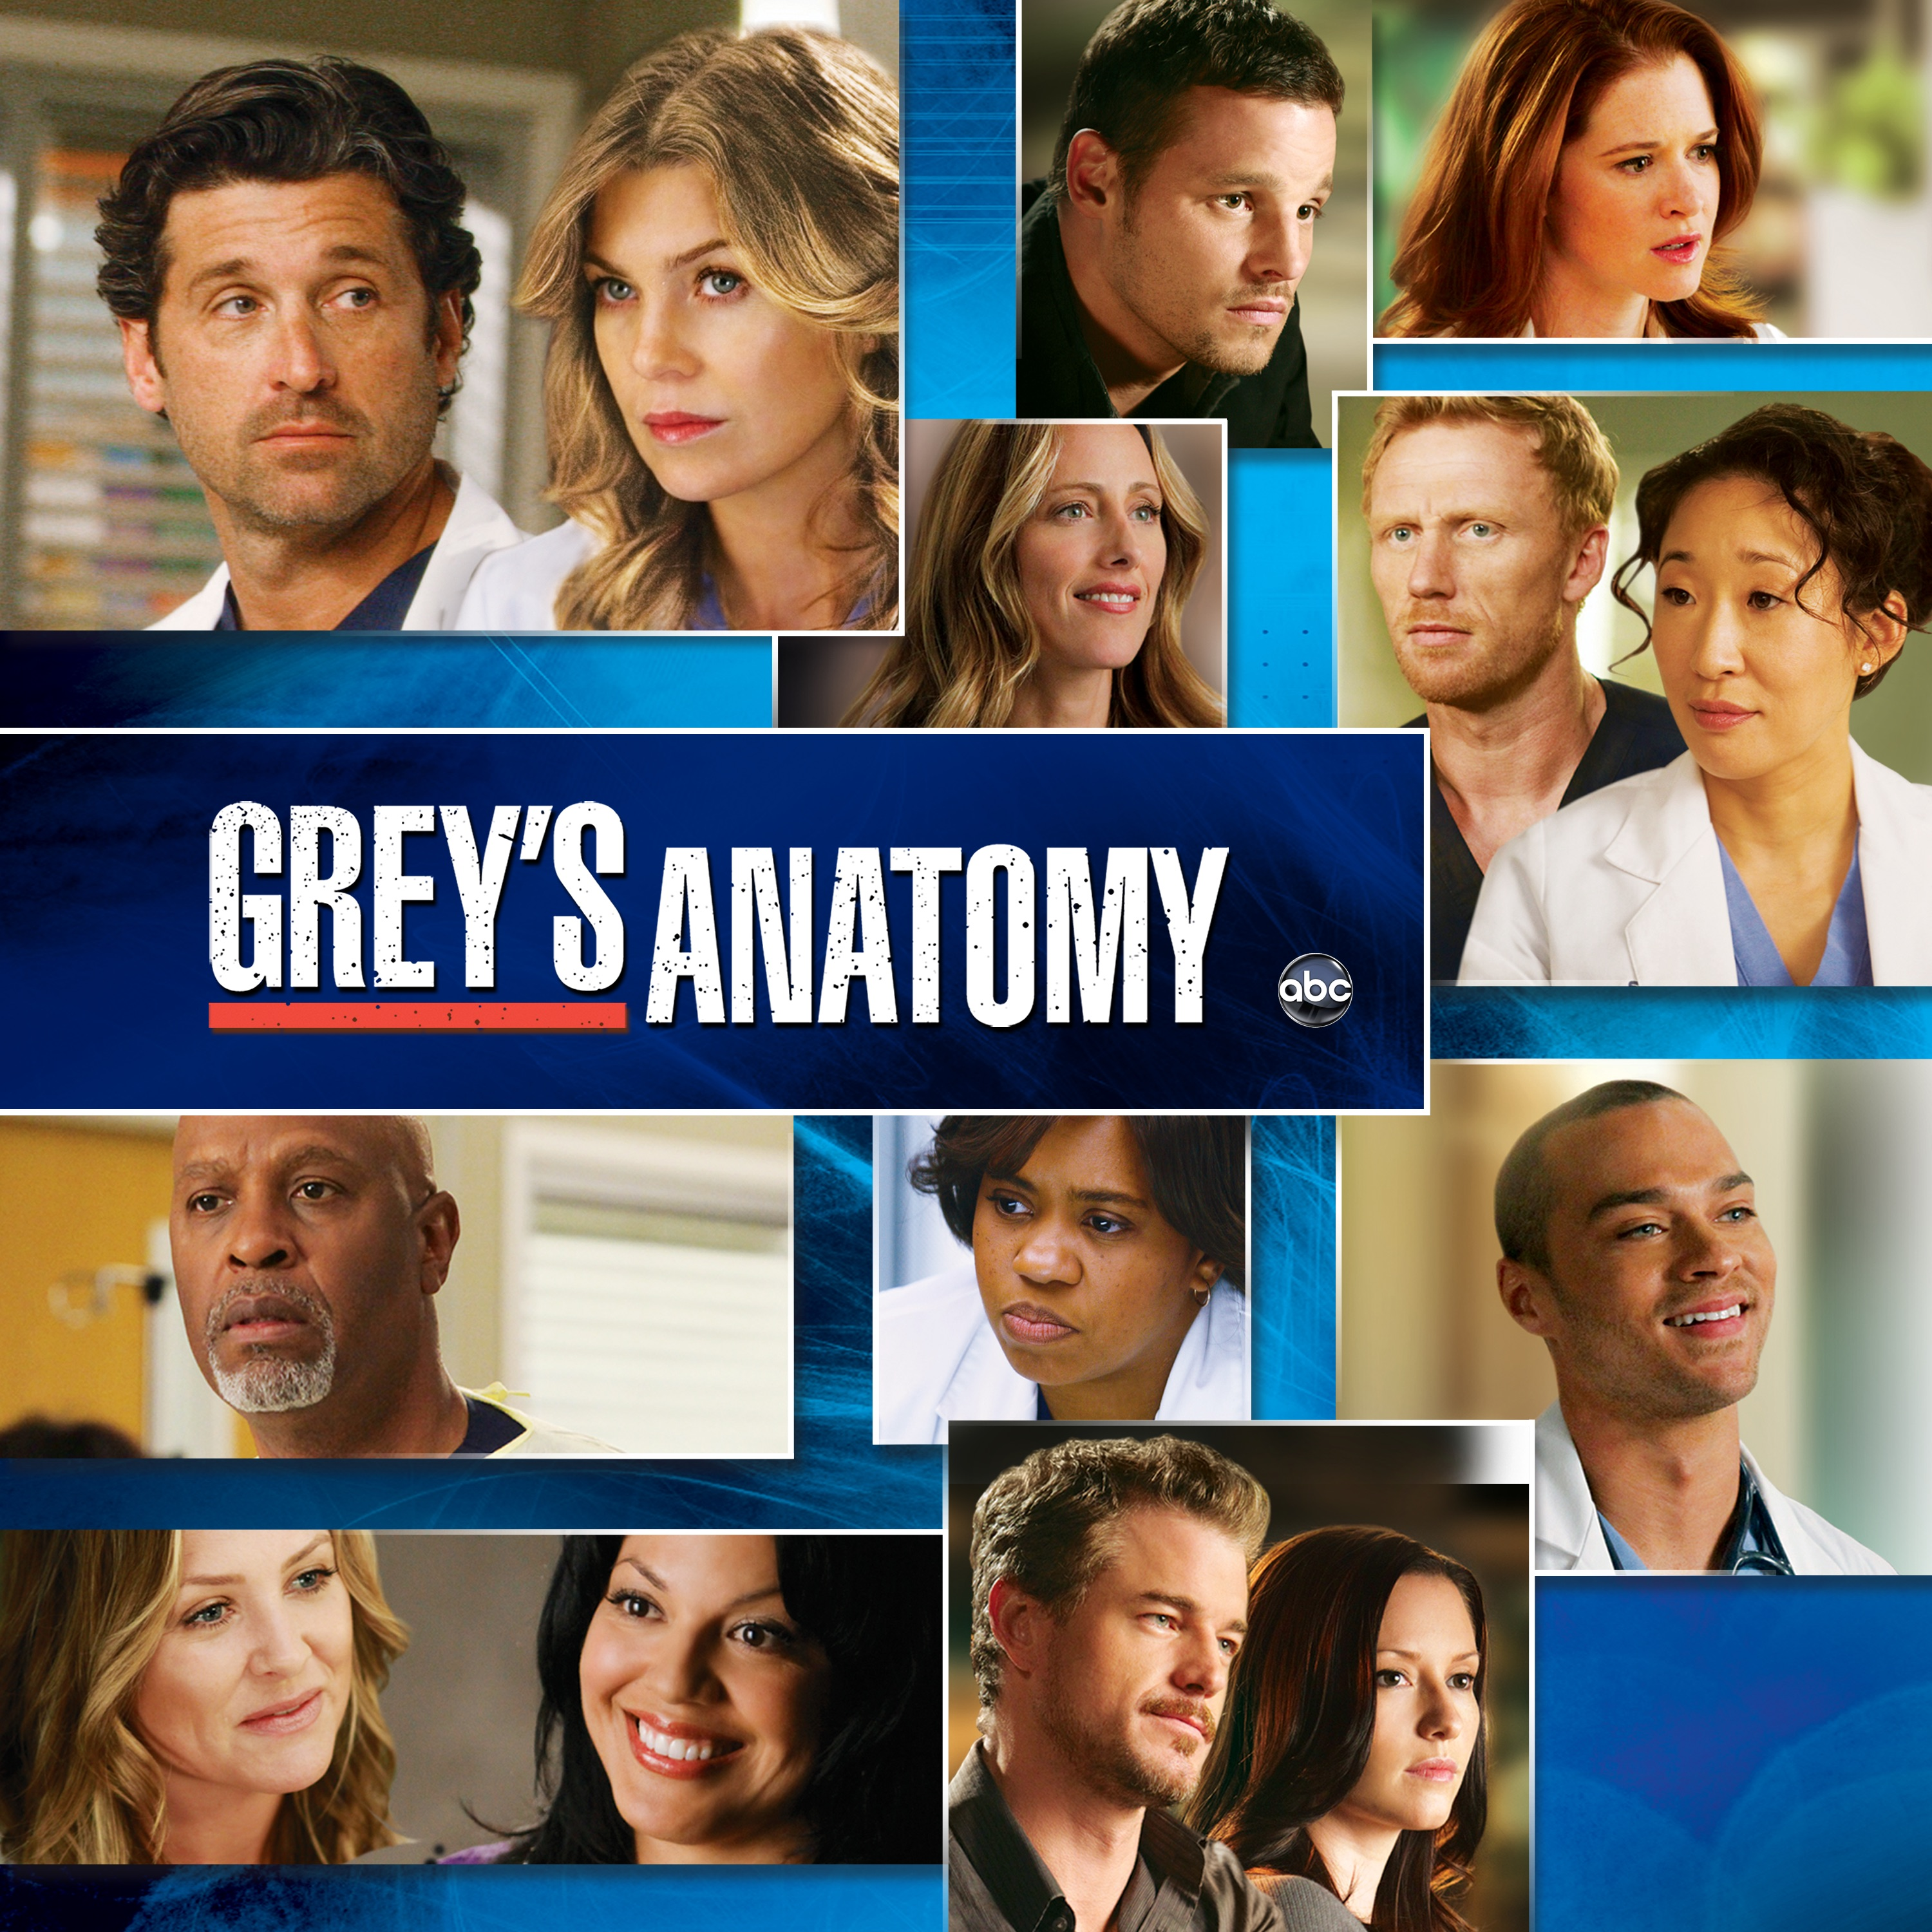 Grey anatomy season 9 episode 1 watch online free - Country bucks ...